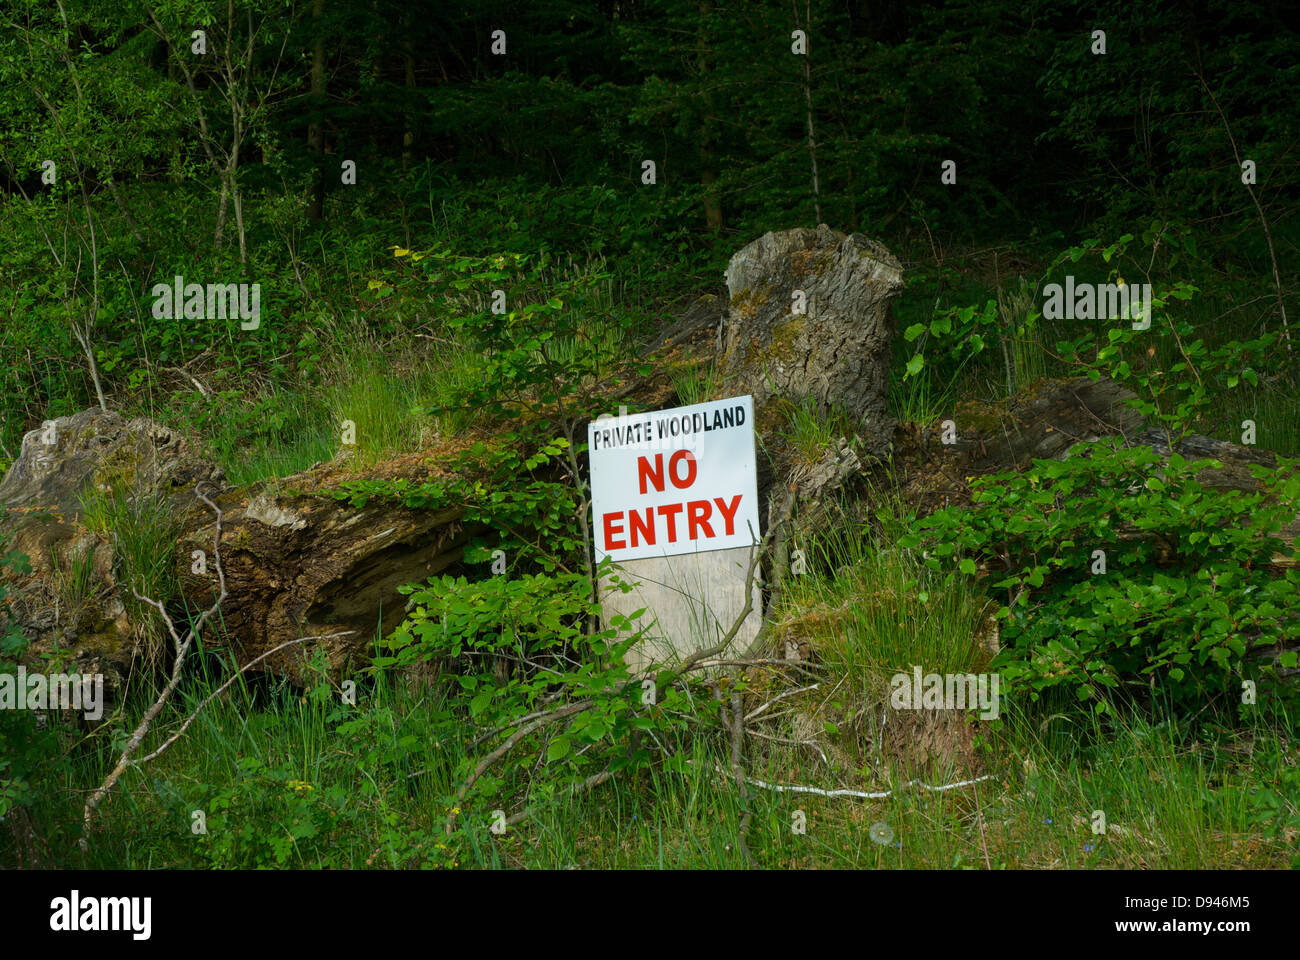 Sign - 'Private Woodland, No Entry' - in a wood, Cumbria, England UK Stock Photo